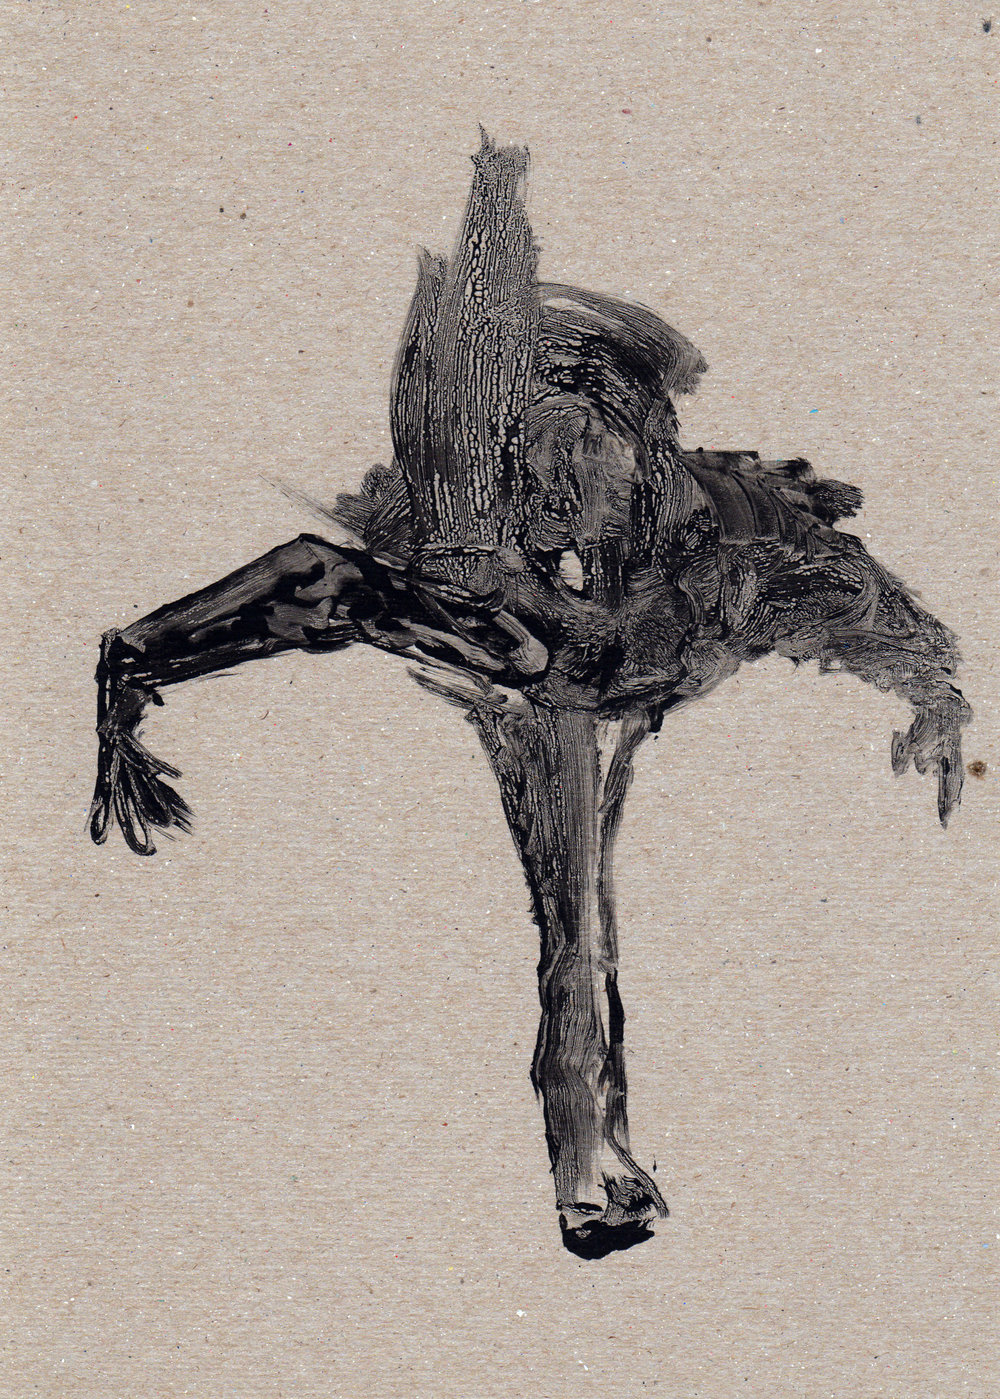 Untitled Skate, 2014, gelatin monotype, 11x8 inches